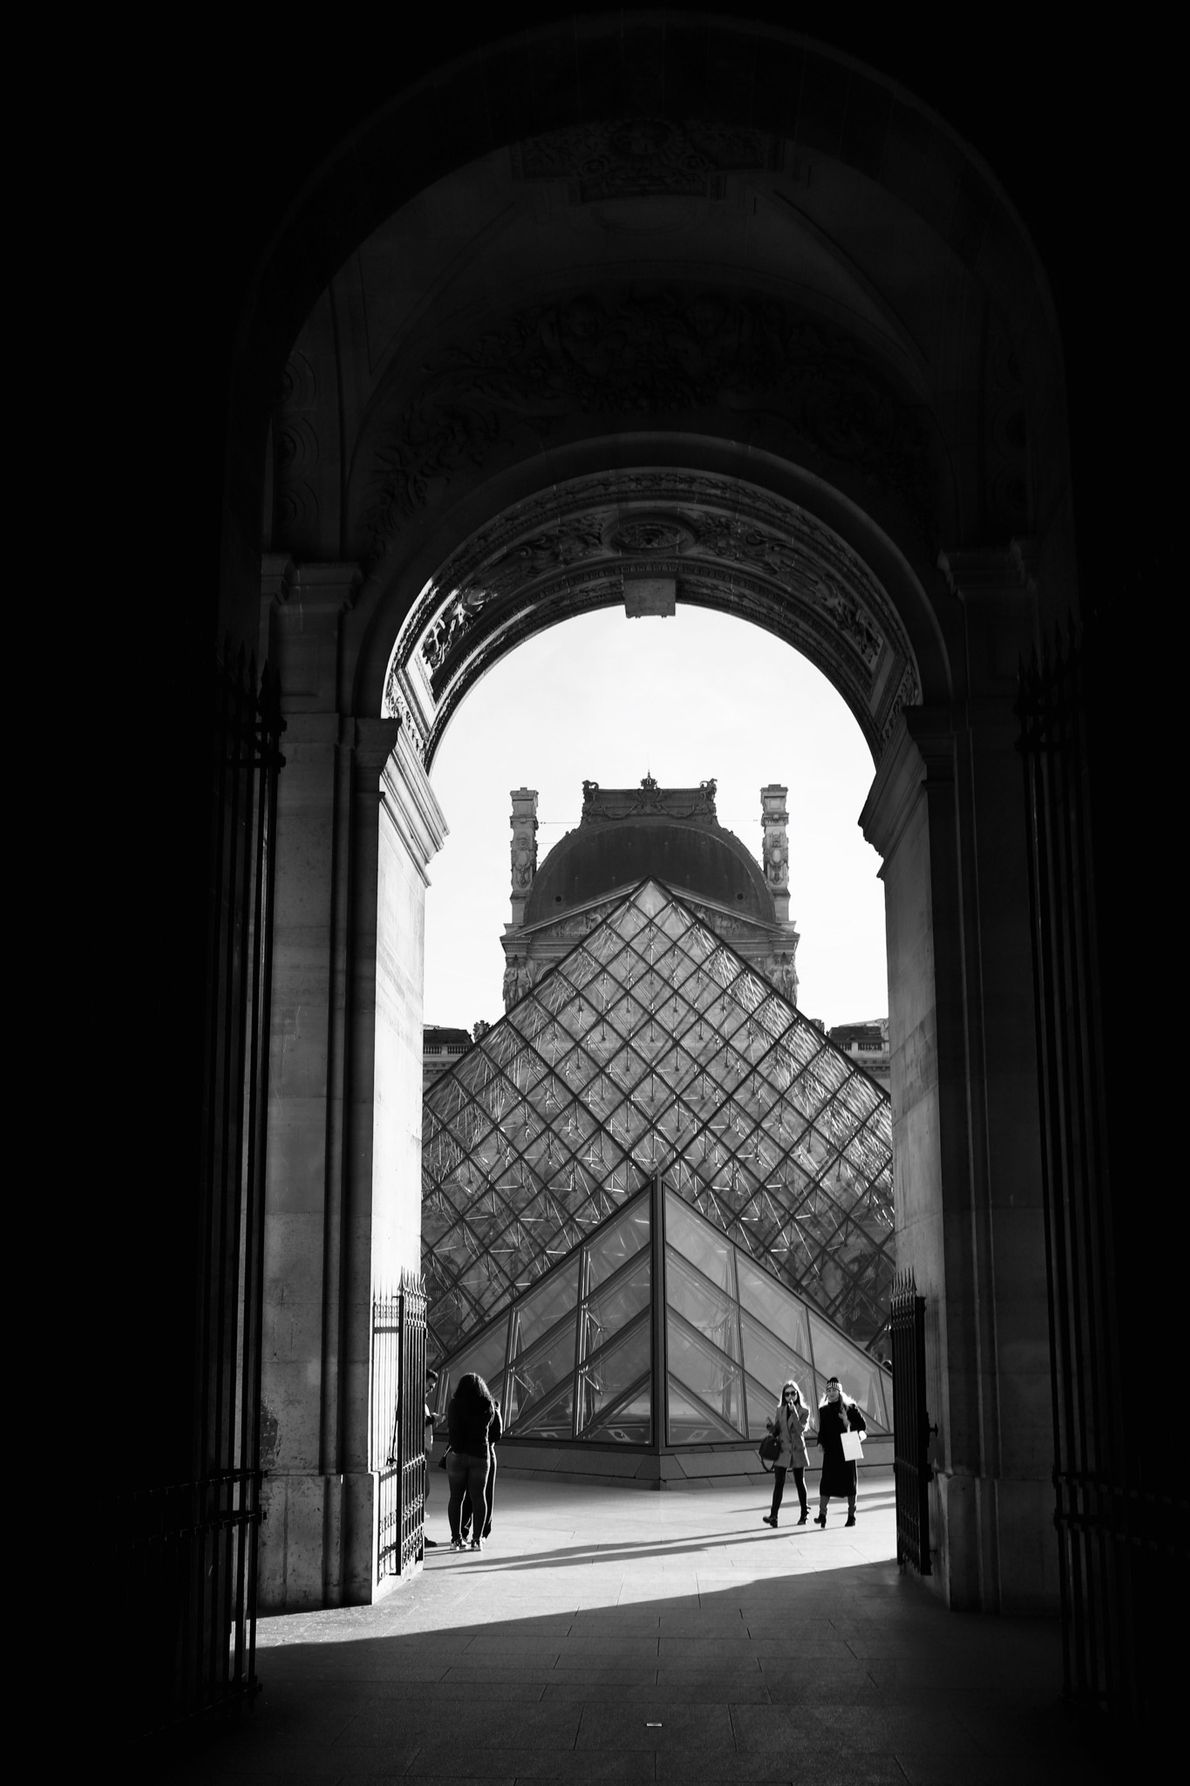 In 1989, Chinese-American architect I. M. Pei's 72-foot-high, metal-and-glass pyramid debuted in the courtyard of the ...